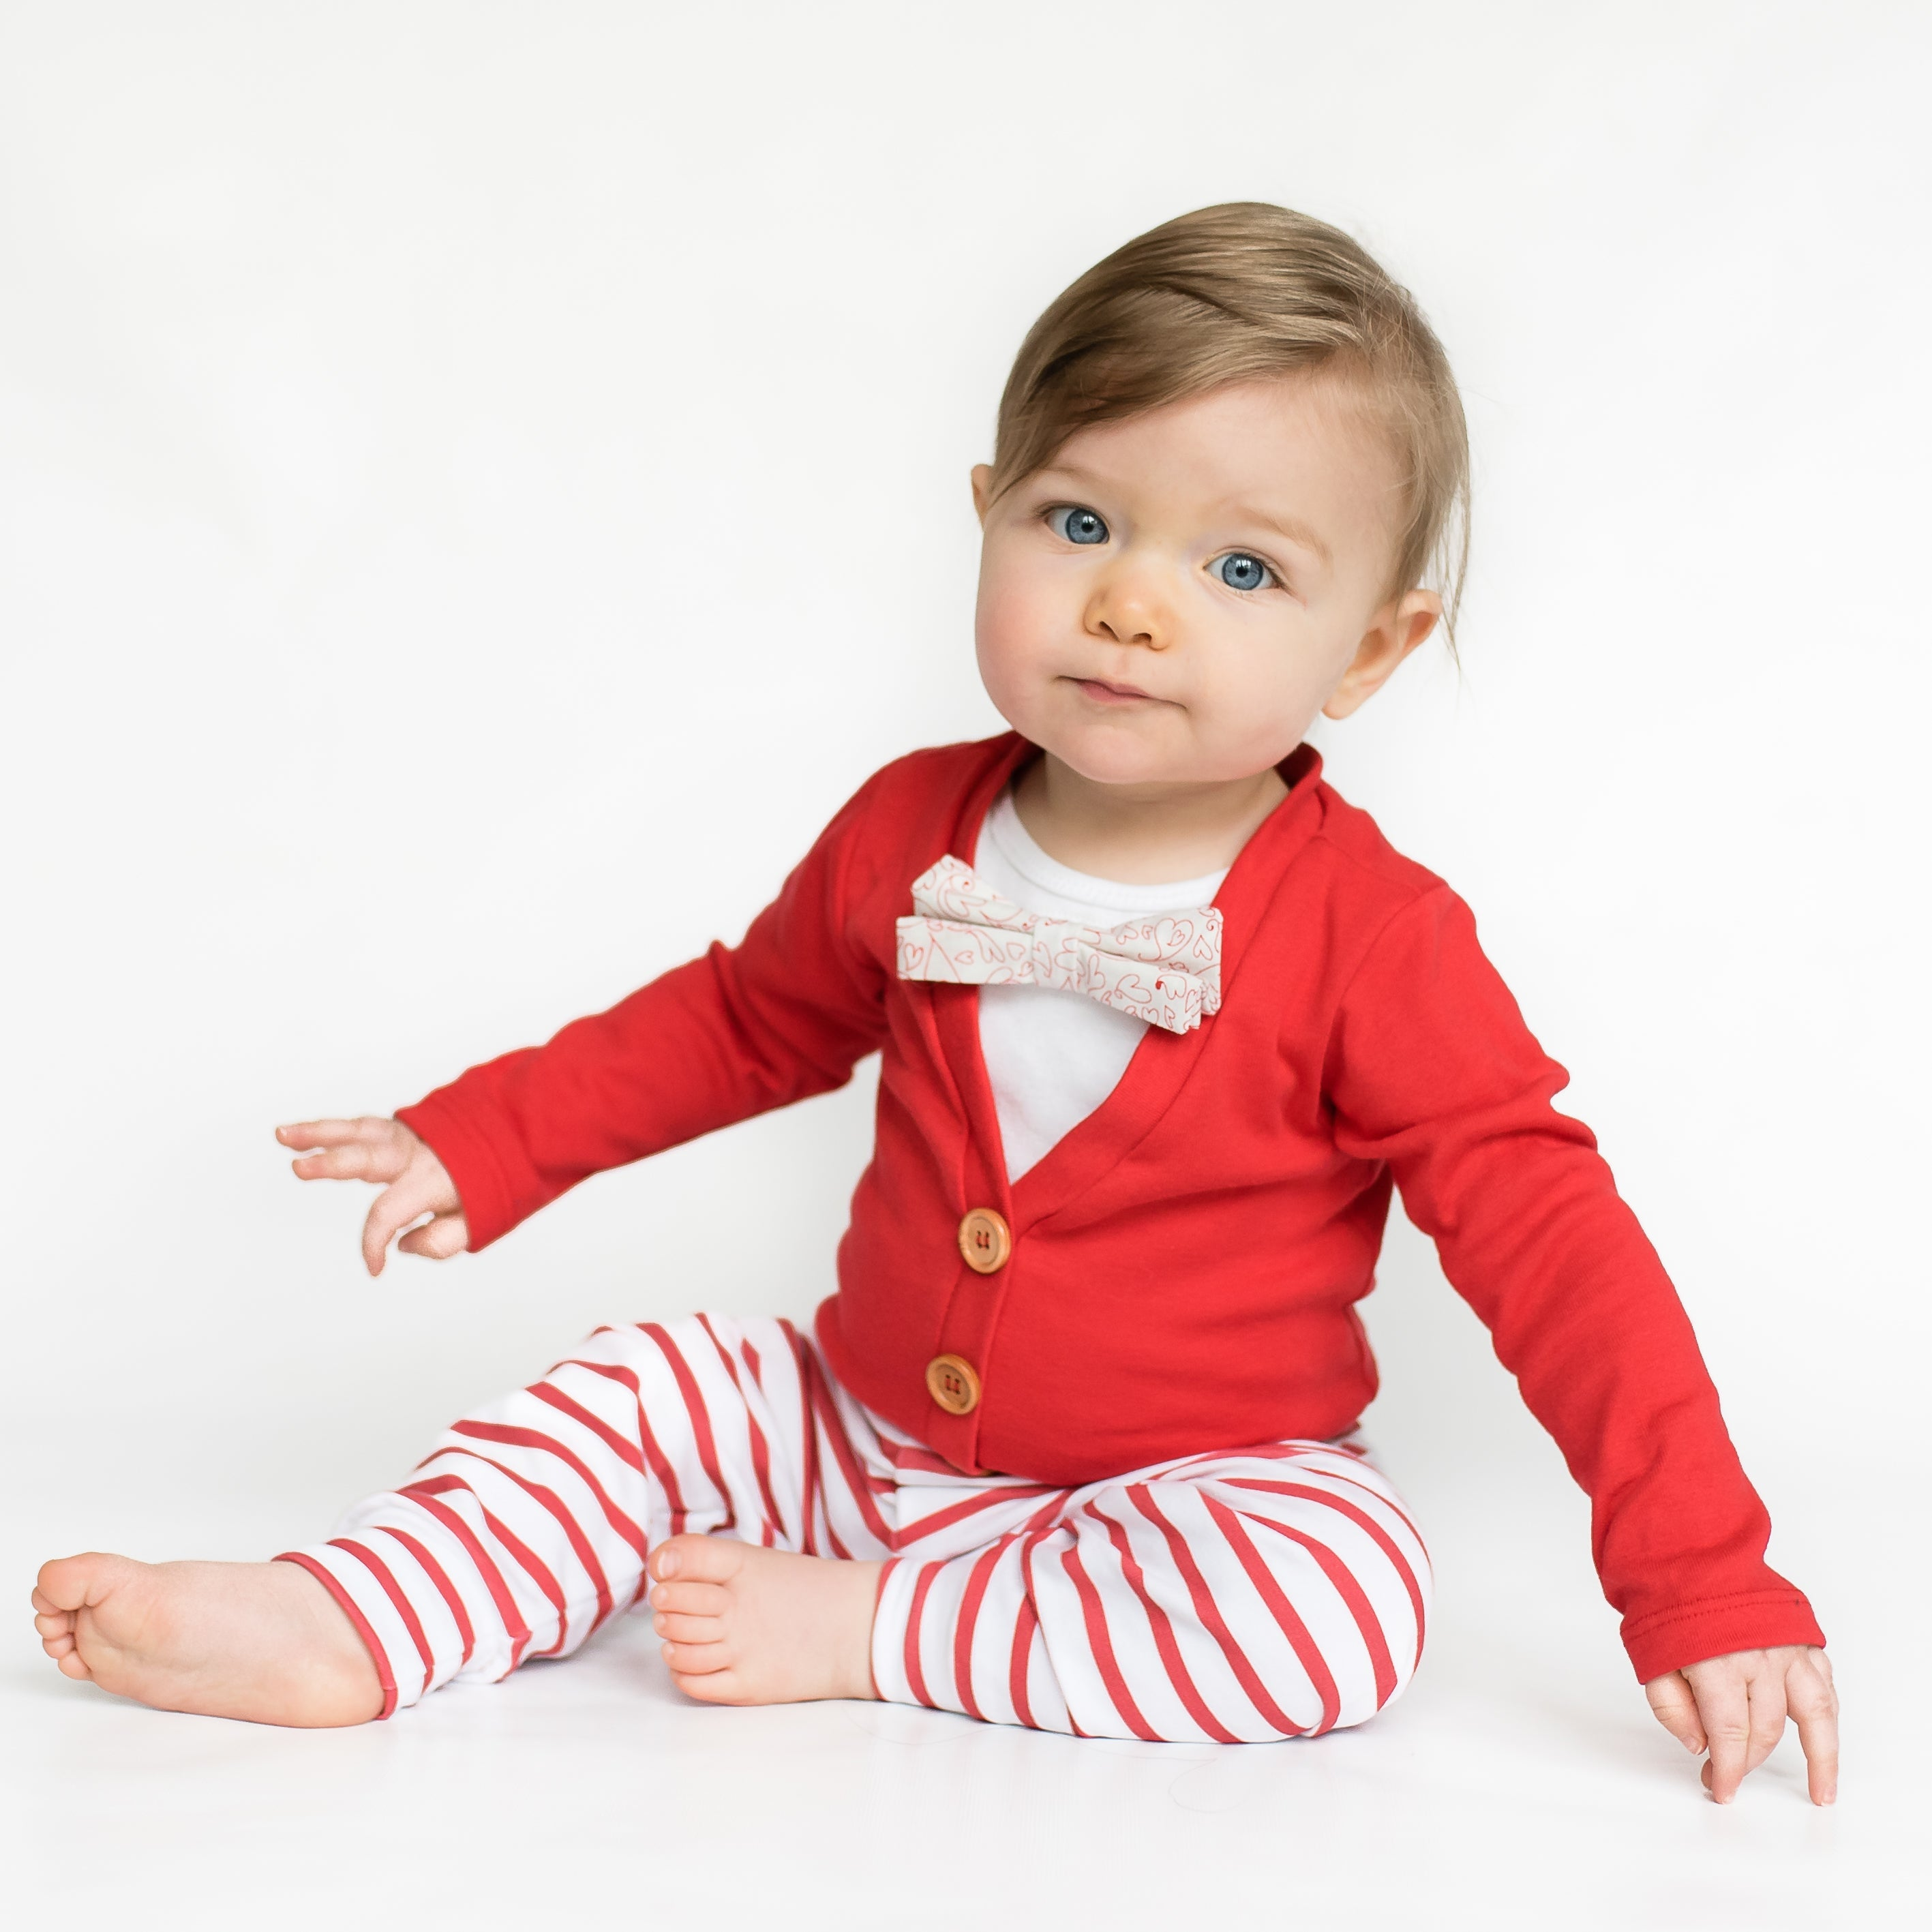 fbbd2e23a Baby Boy Valentine's Day Outfits: 7 Cardigan Onesie Ideas